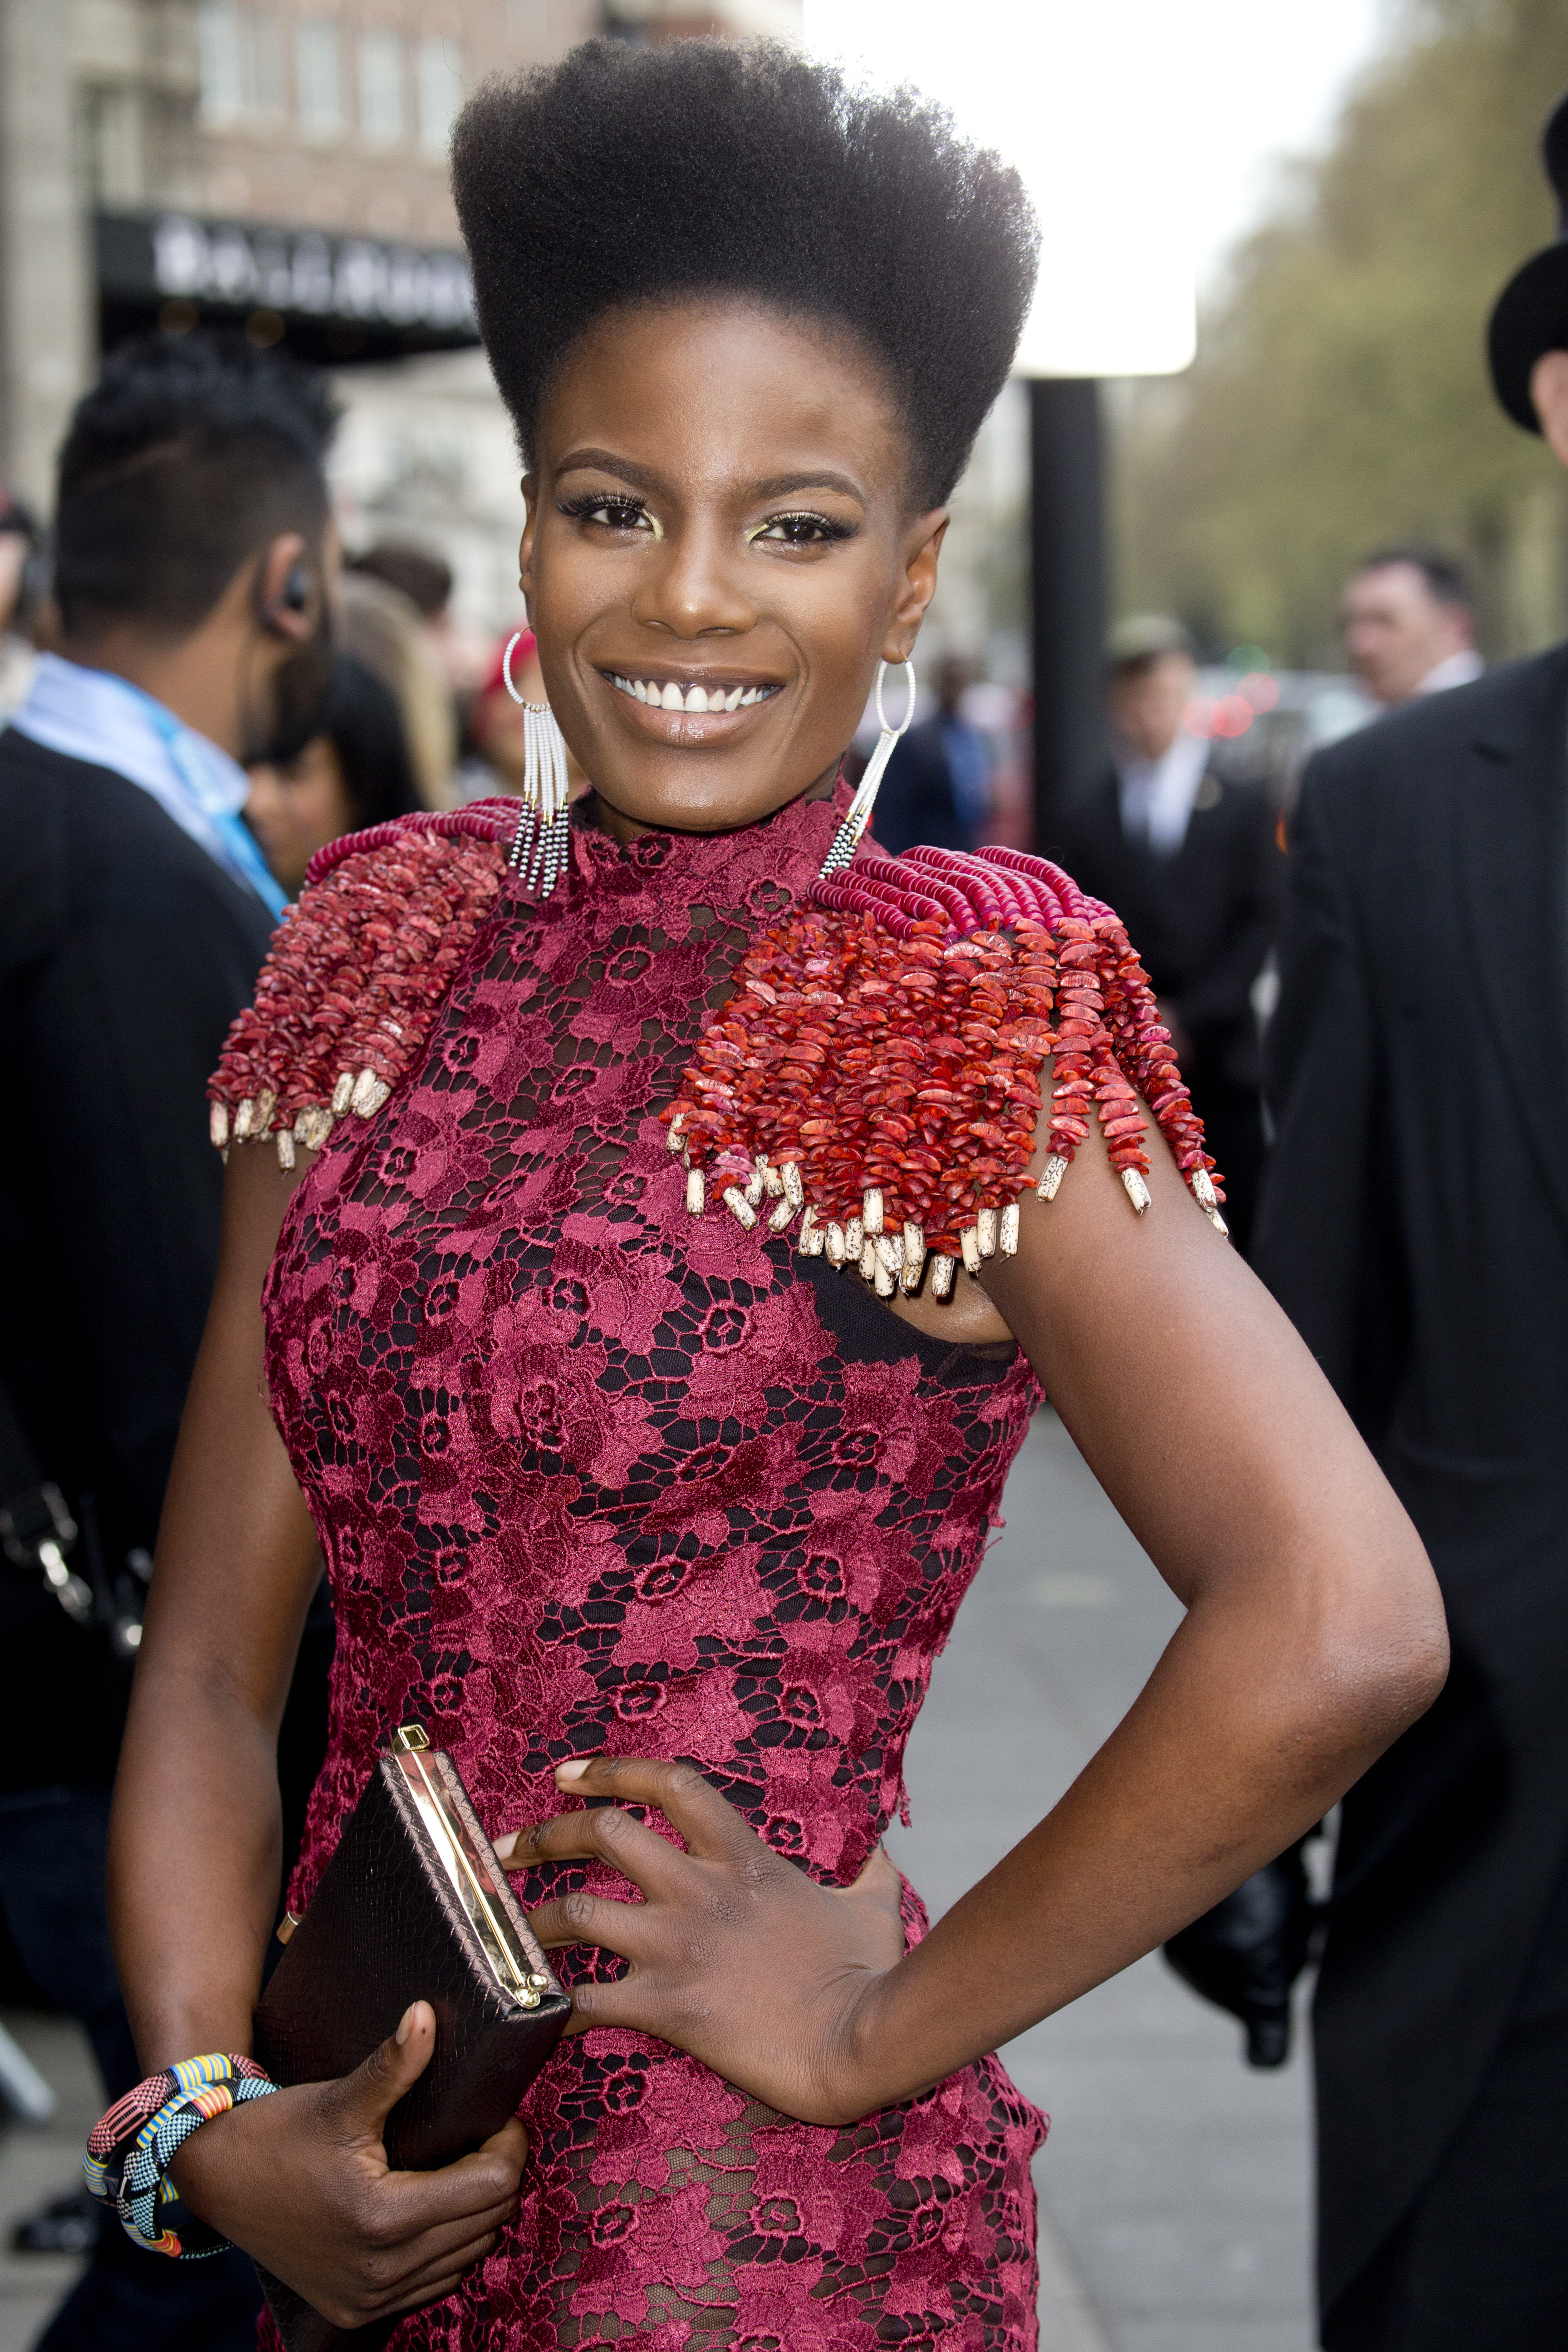 Swell 45 Black Hairstyles For Short Hair Short Haircuts For Black Women Hairstyles For Men Maxibearus